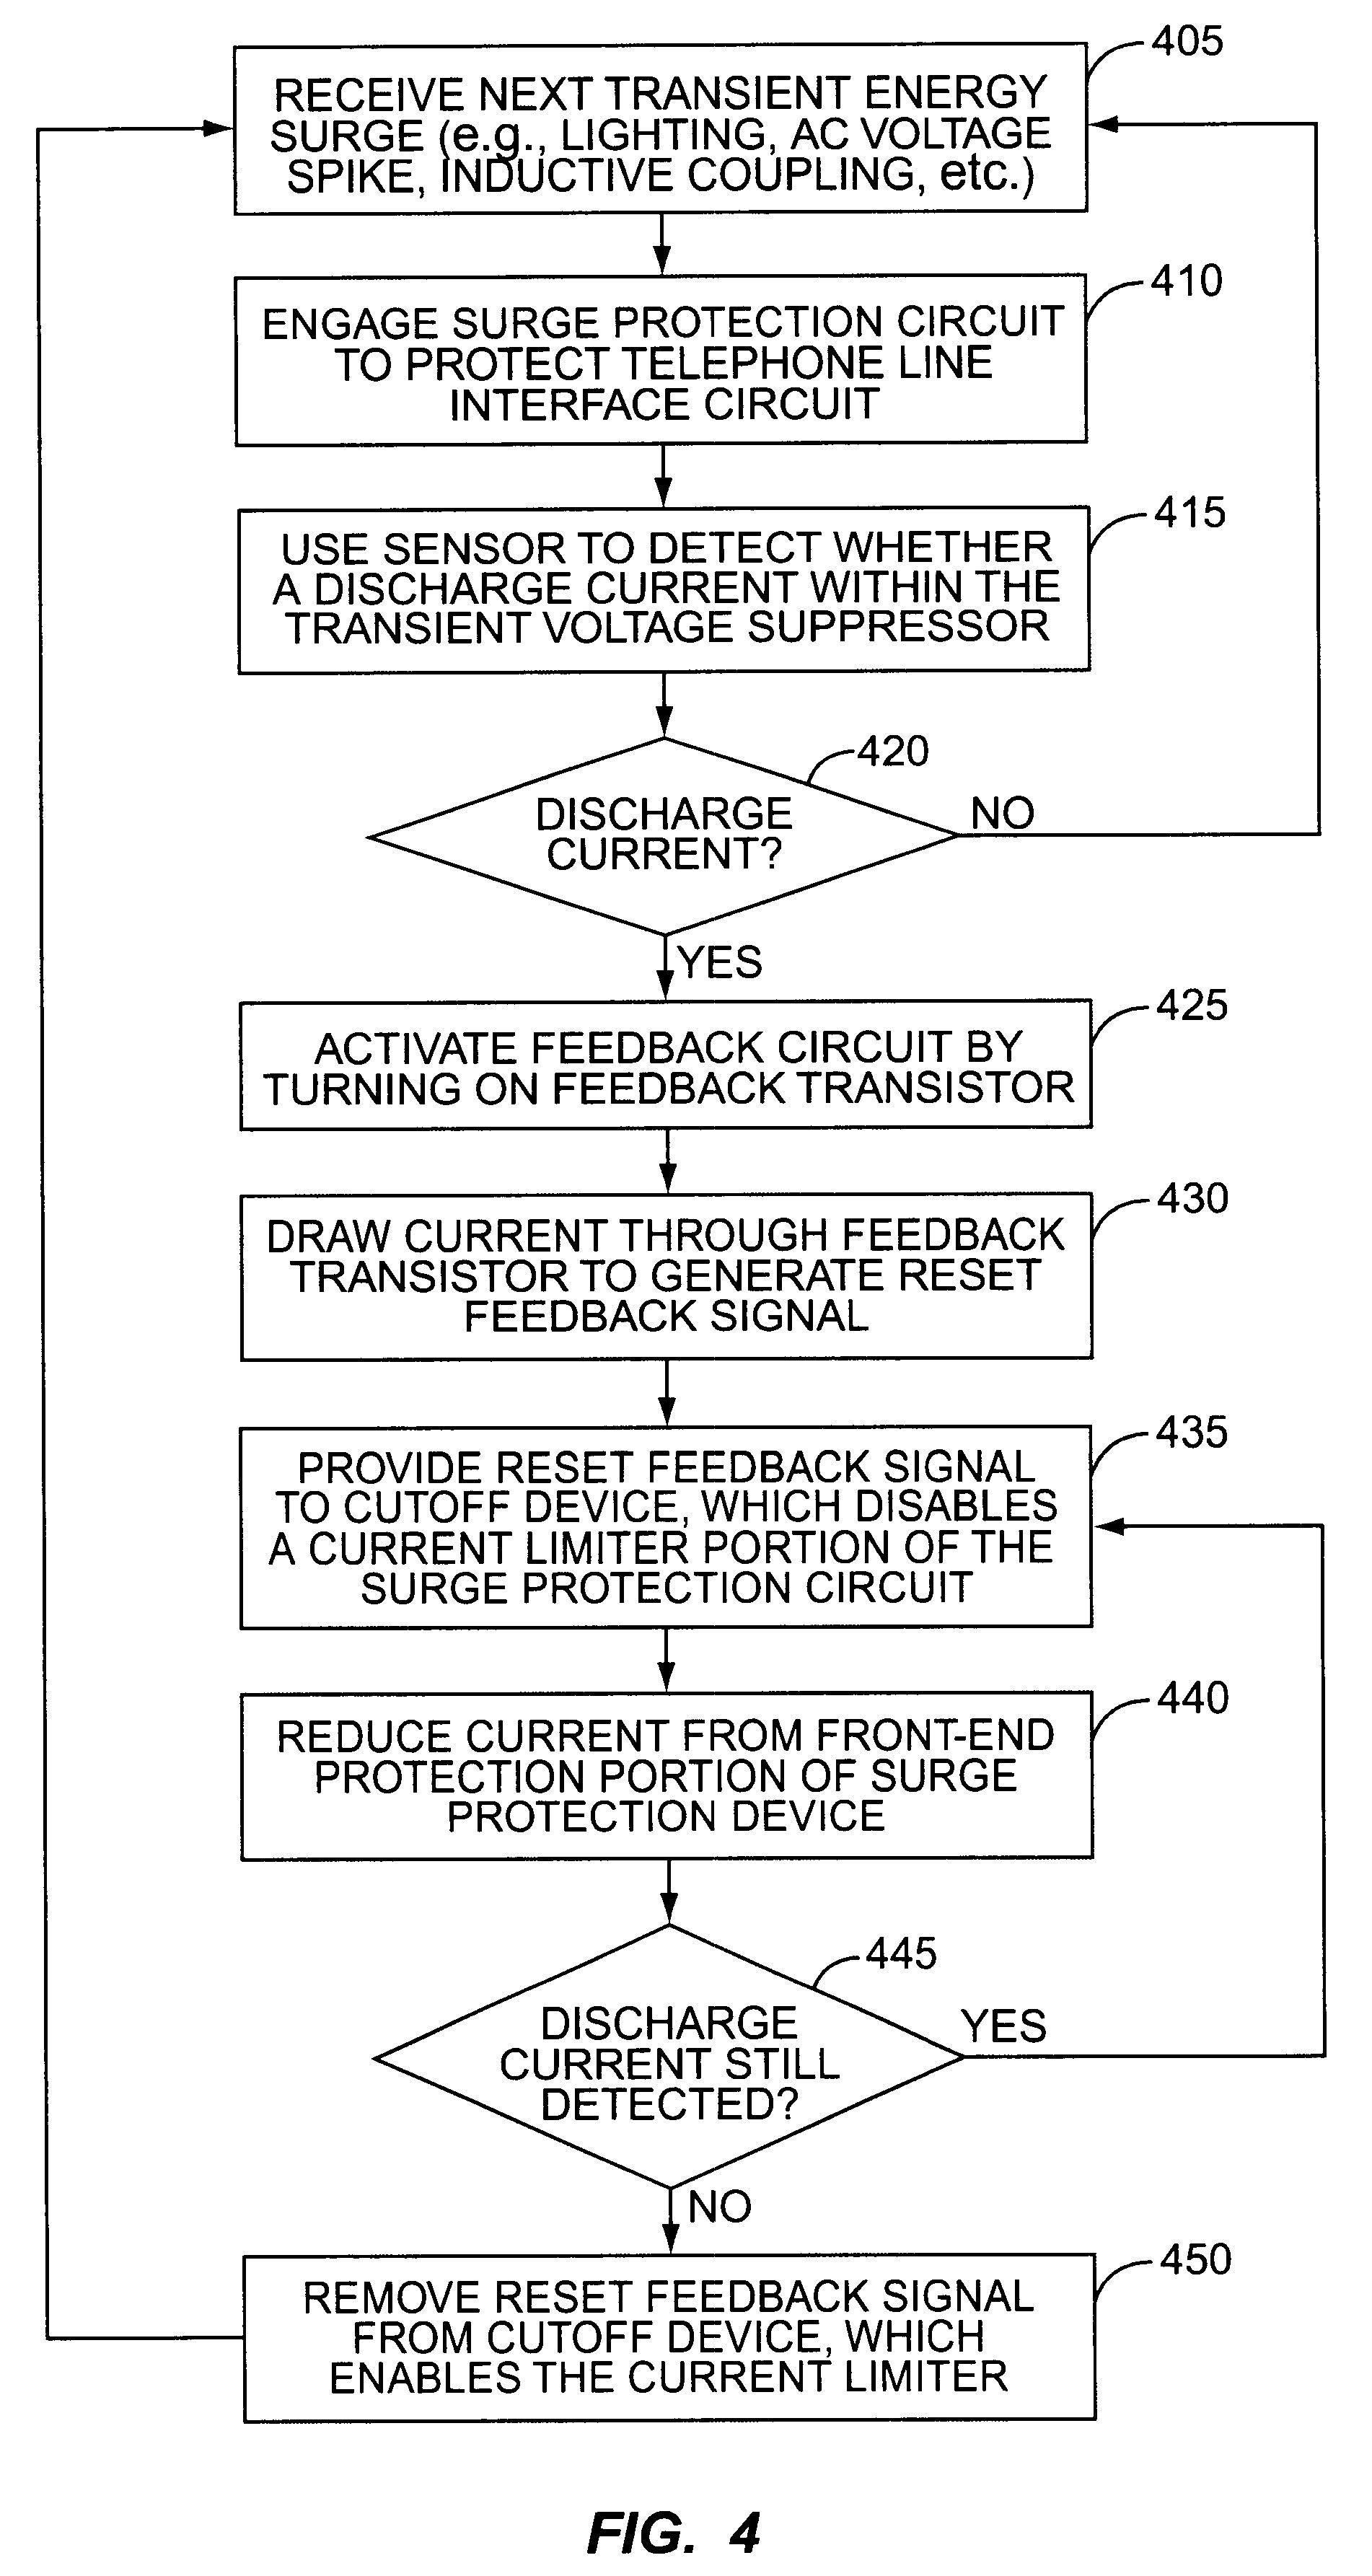 Patent Us6563926 Resetting Surge Protection In Telephone Line Sidac Basic Operation Drawing